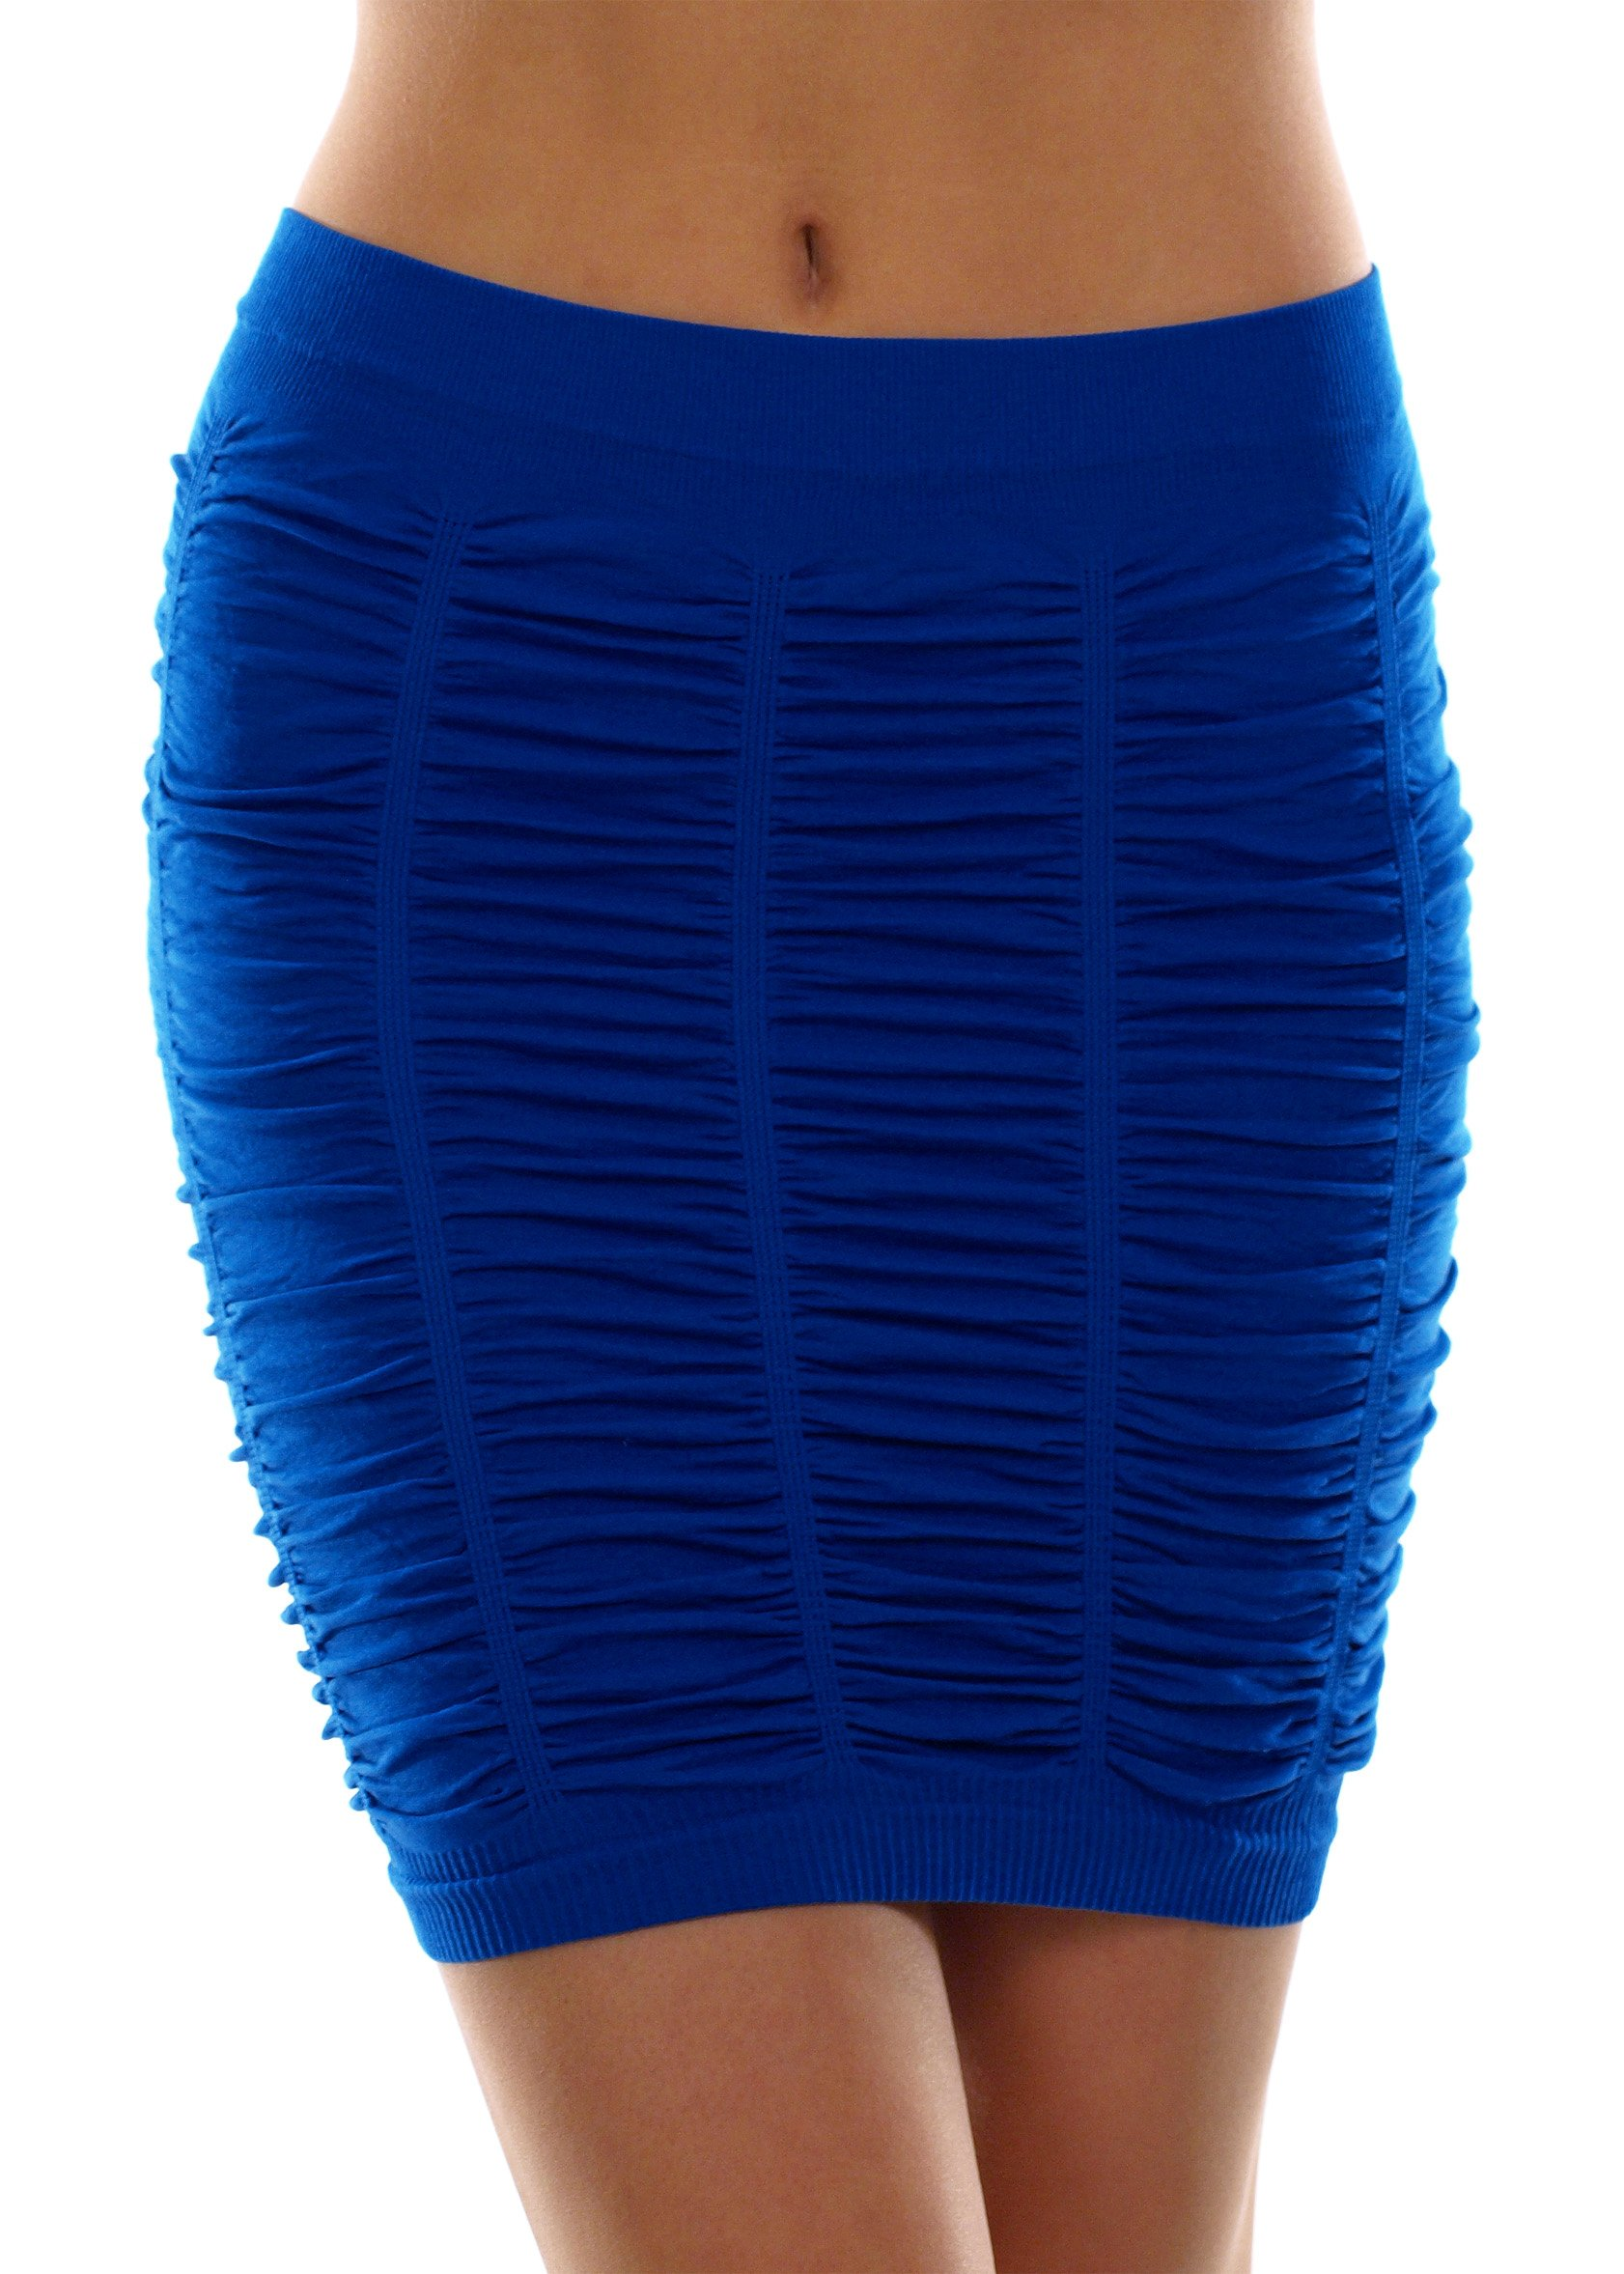 AFC Ruffled Stretch Fit Skirt Size M/L Royal